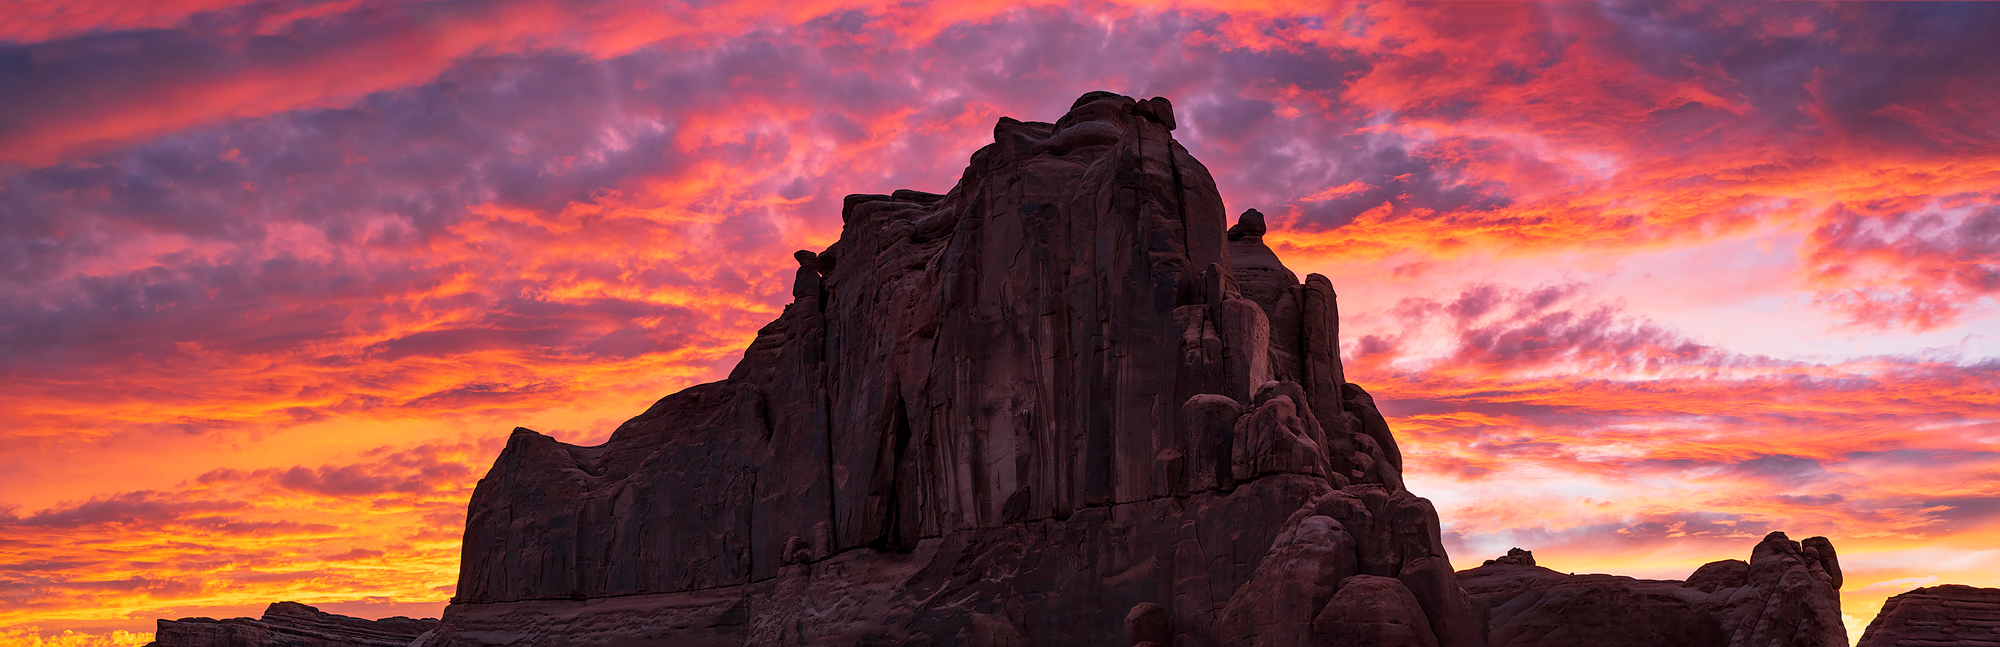 sunset, Arches National Park, Utah, Le Sal Overlook, photo